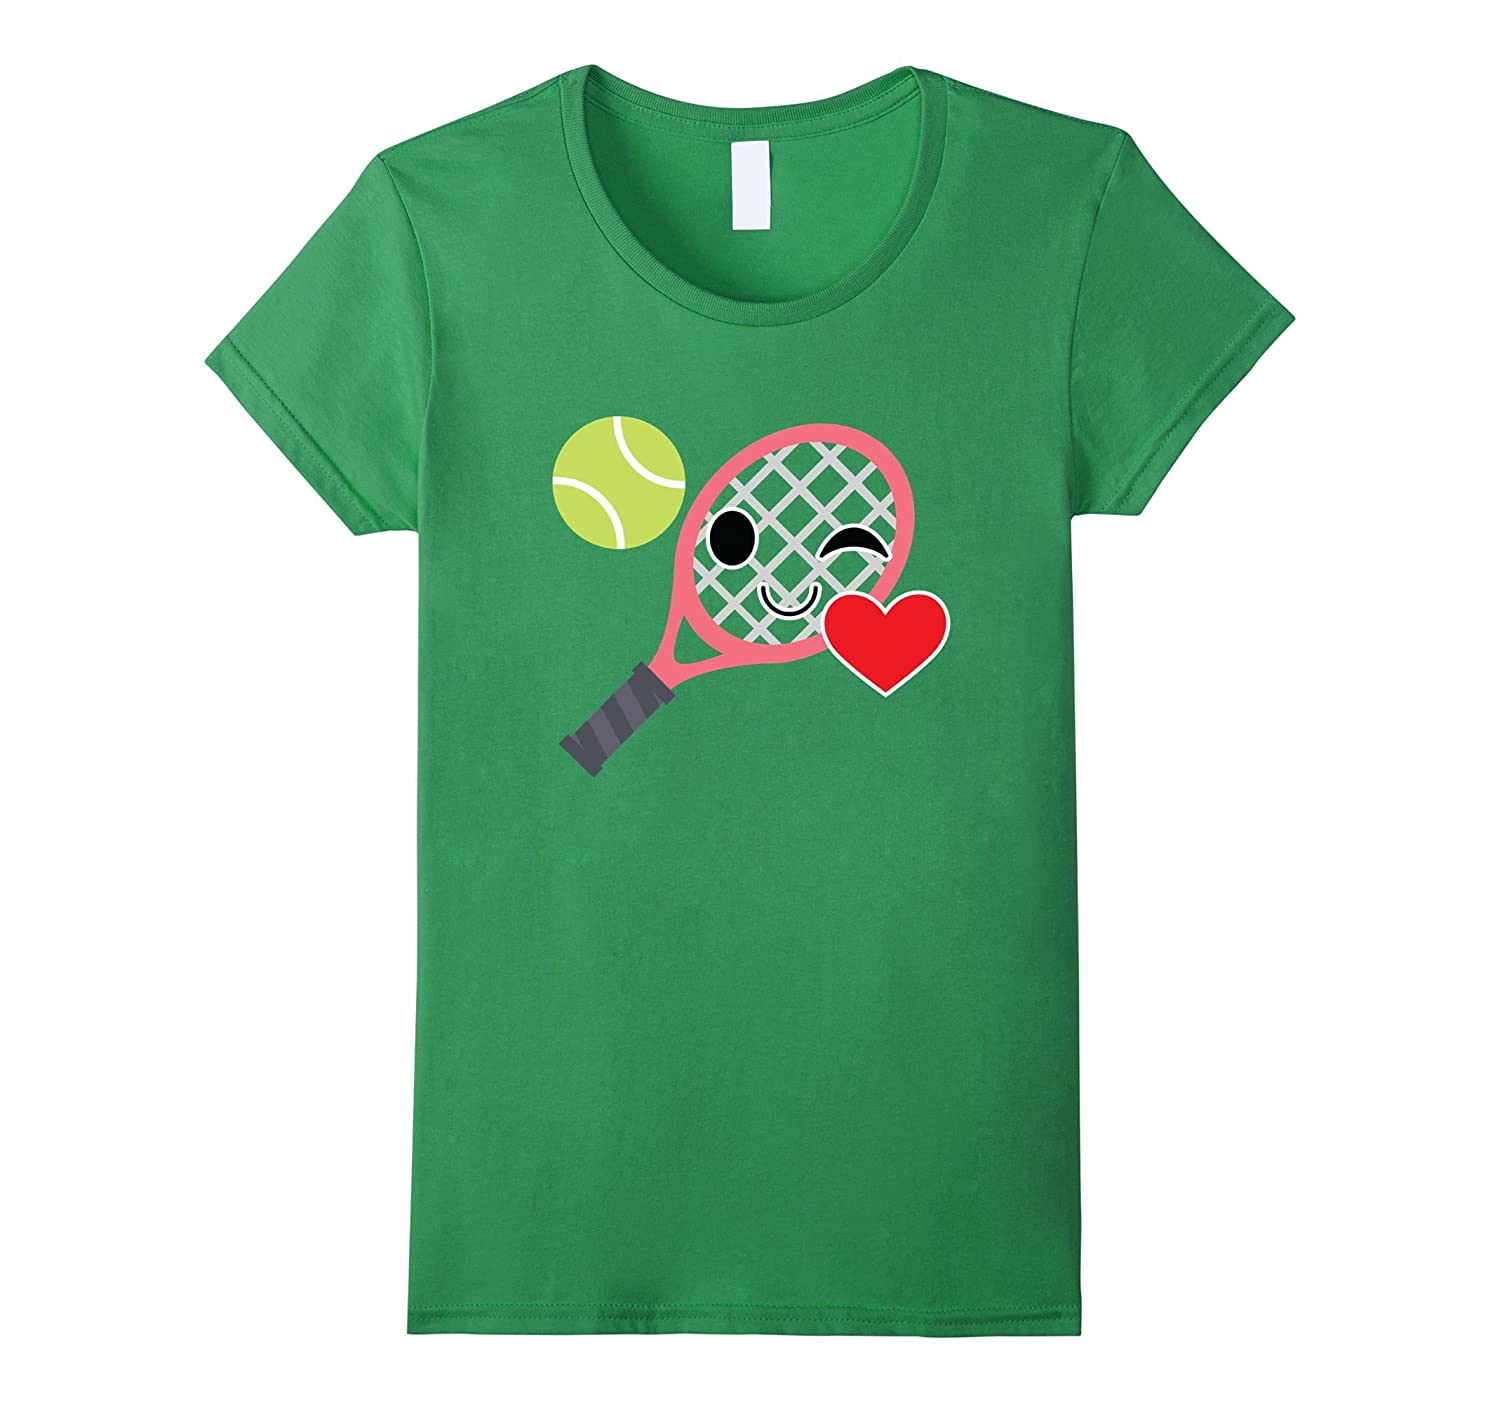 Tennis Emoji Flirt & Blow Kiss Shirt Soft Serve T-Shirt Tee